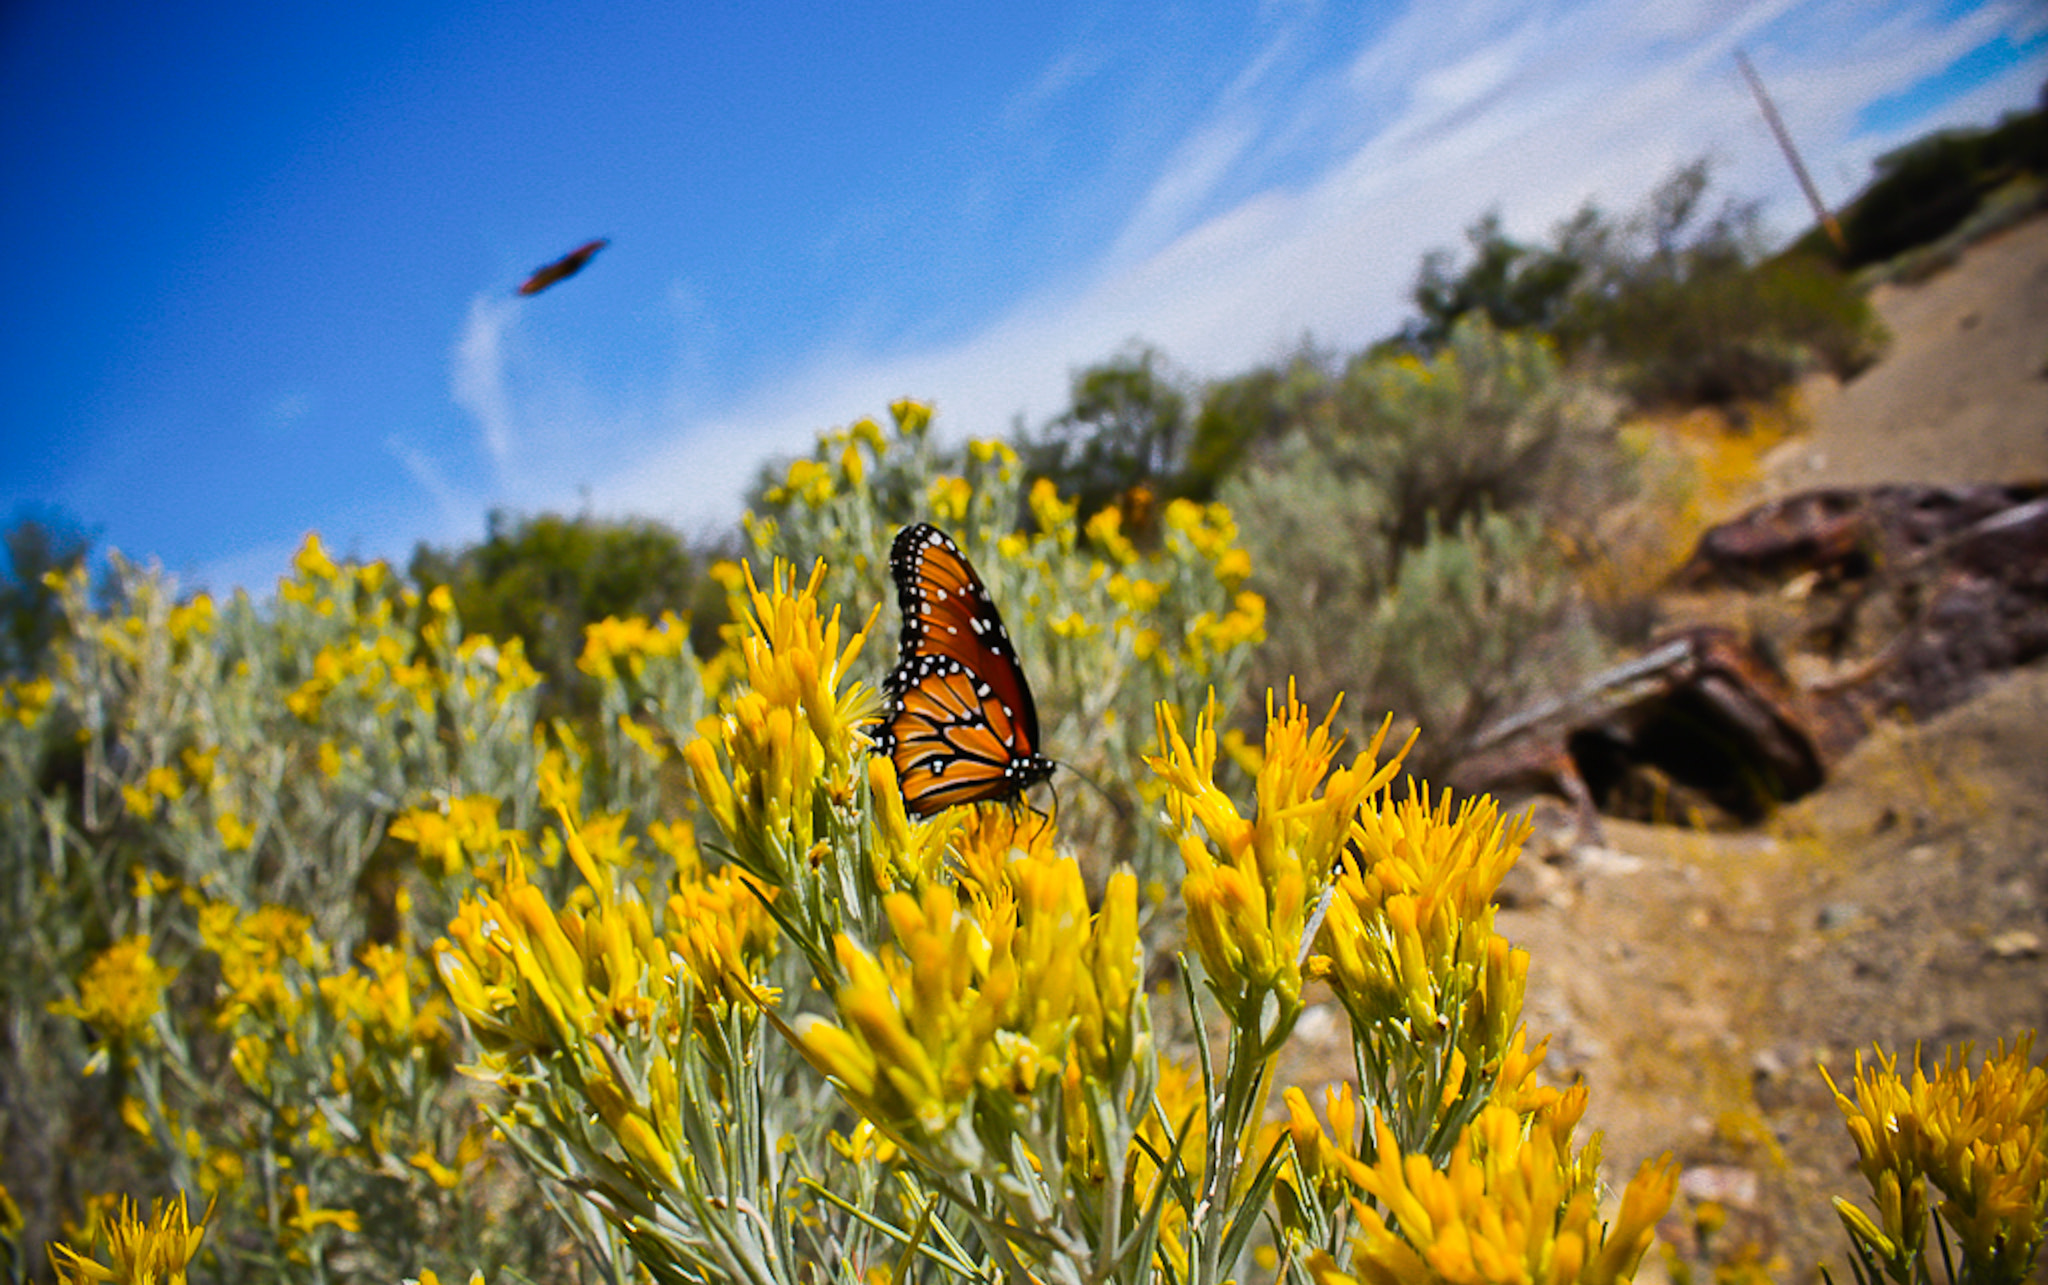 Photograph Monarch by Kirk Wallace on 500px